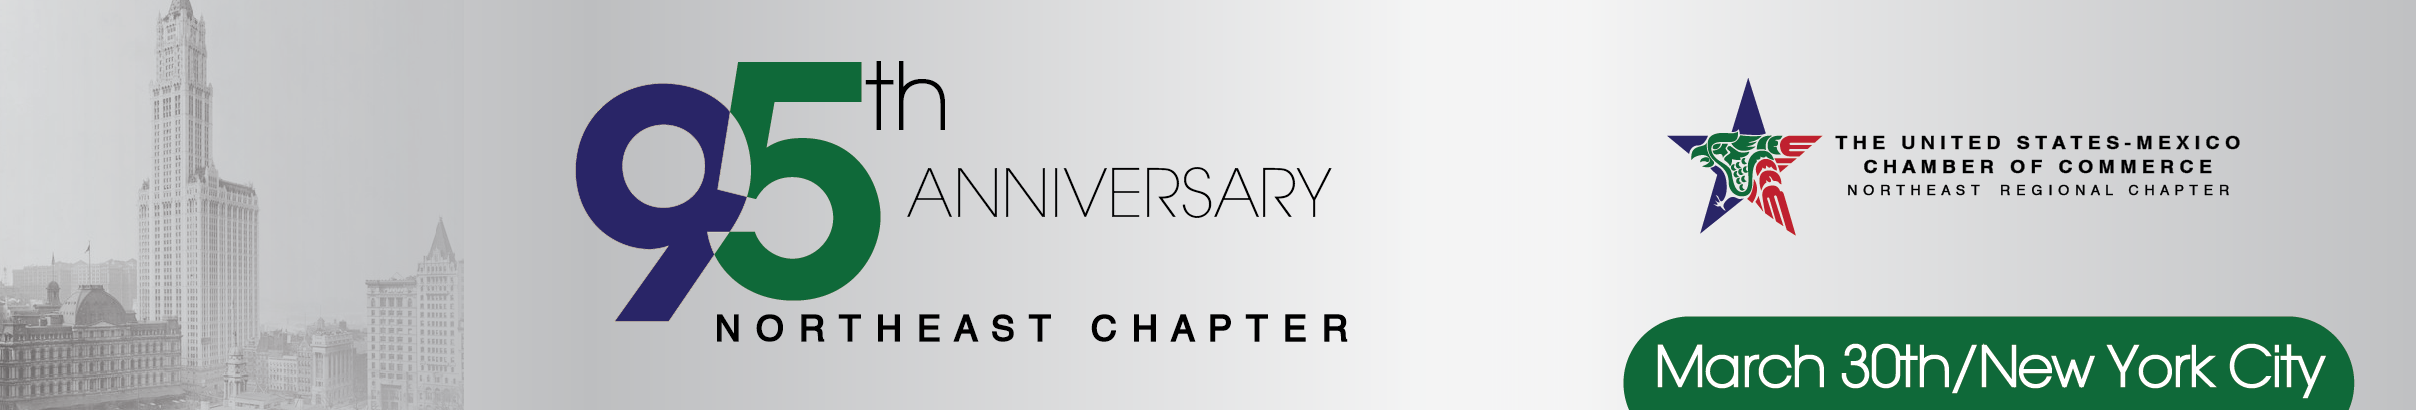 95th Anniversary Northeast Chapter